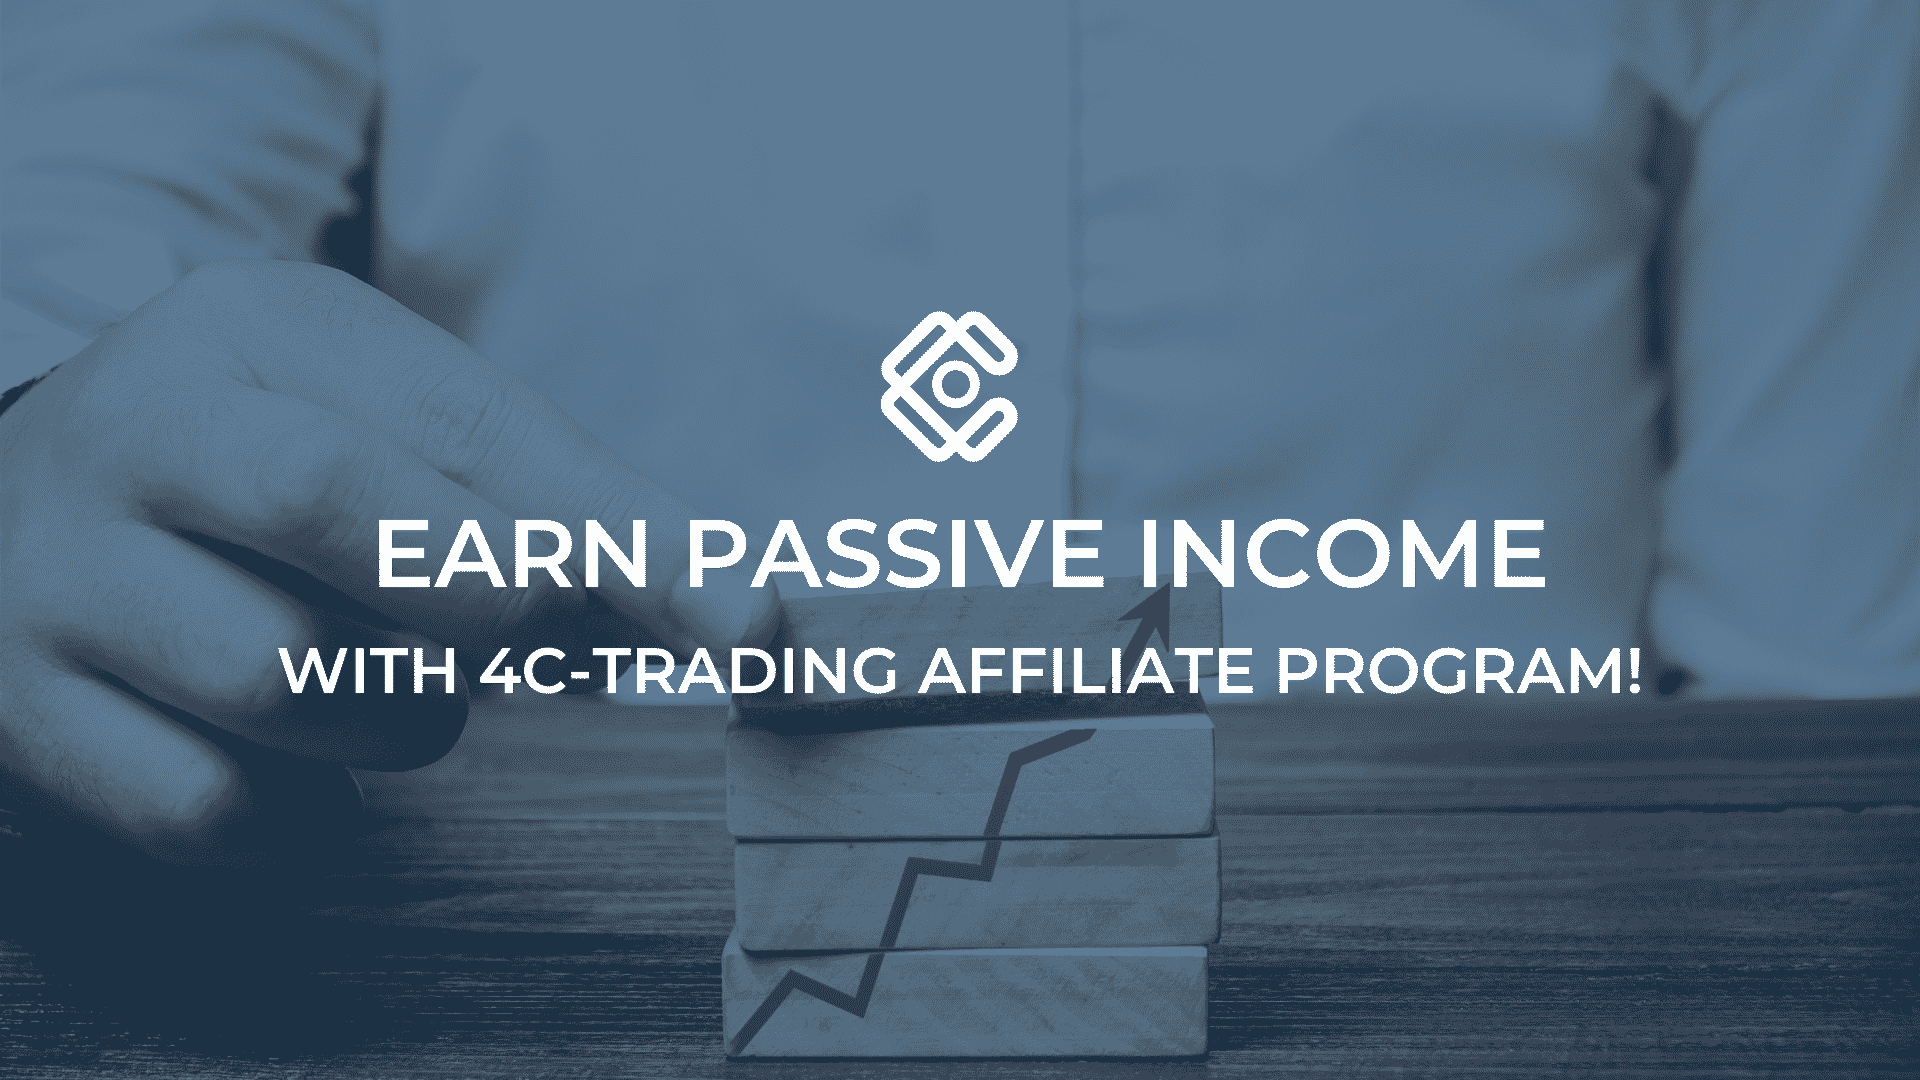 Earn Passive Income with 4C-Trading Affiliate Program